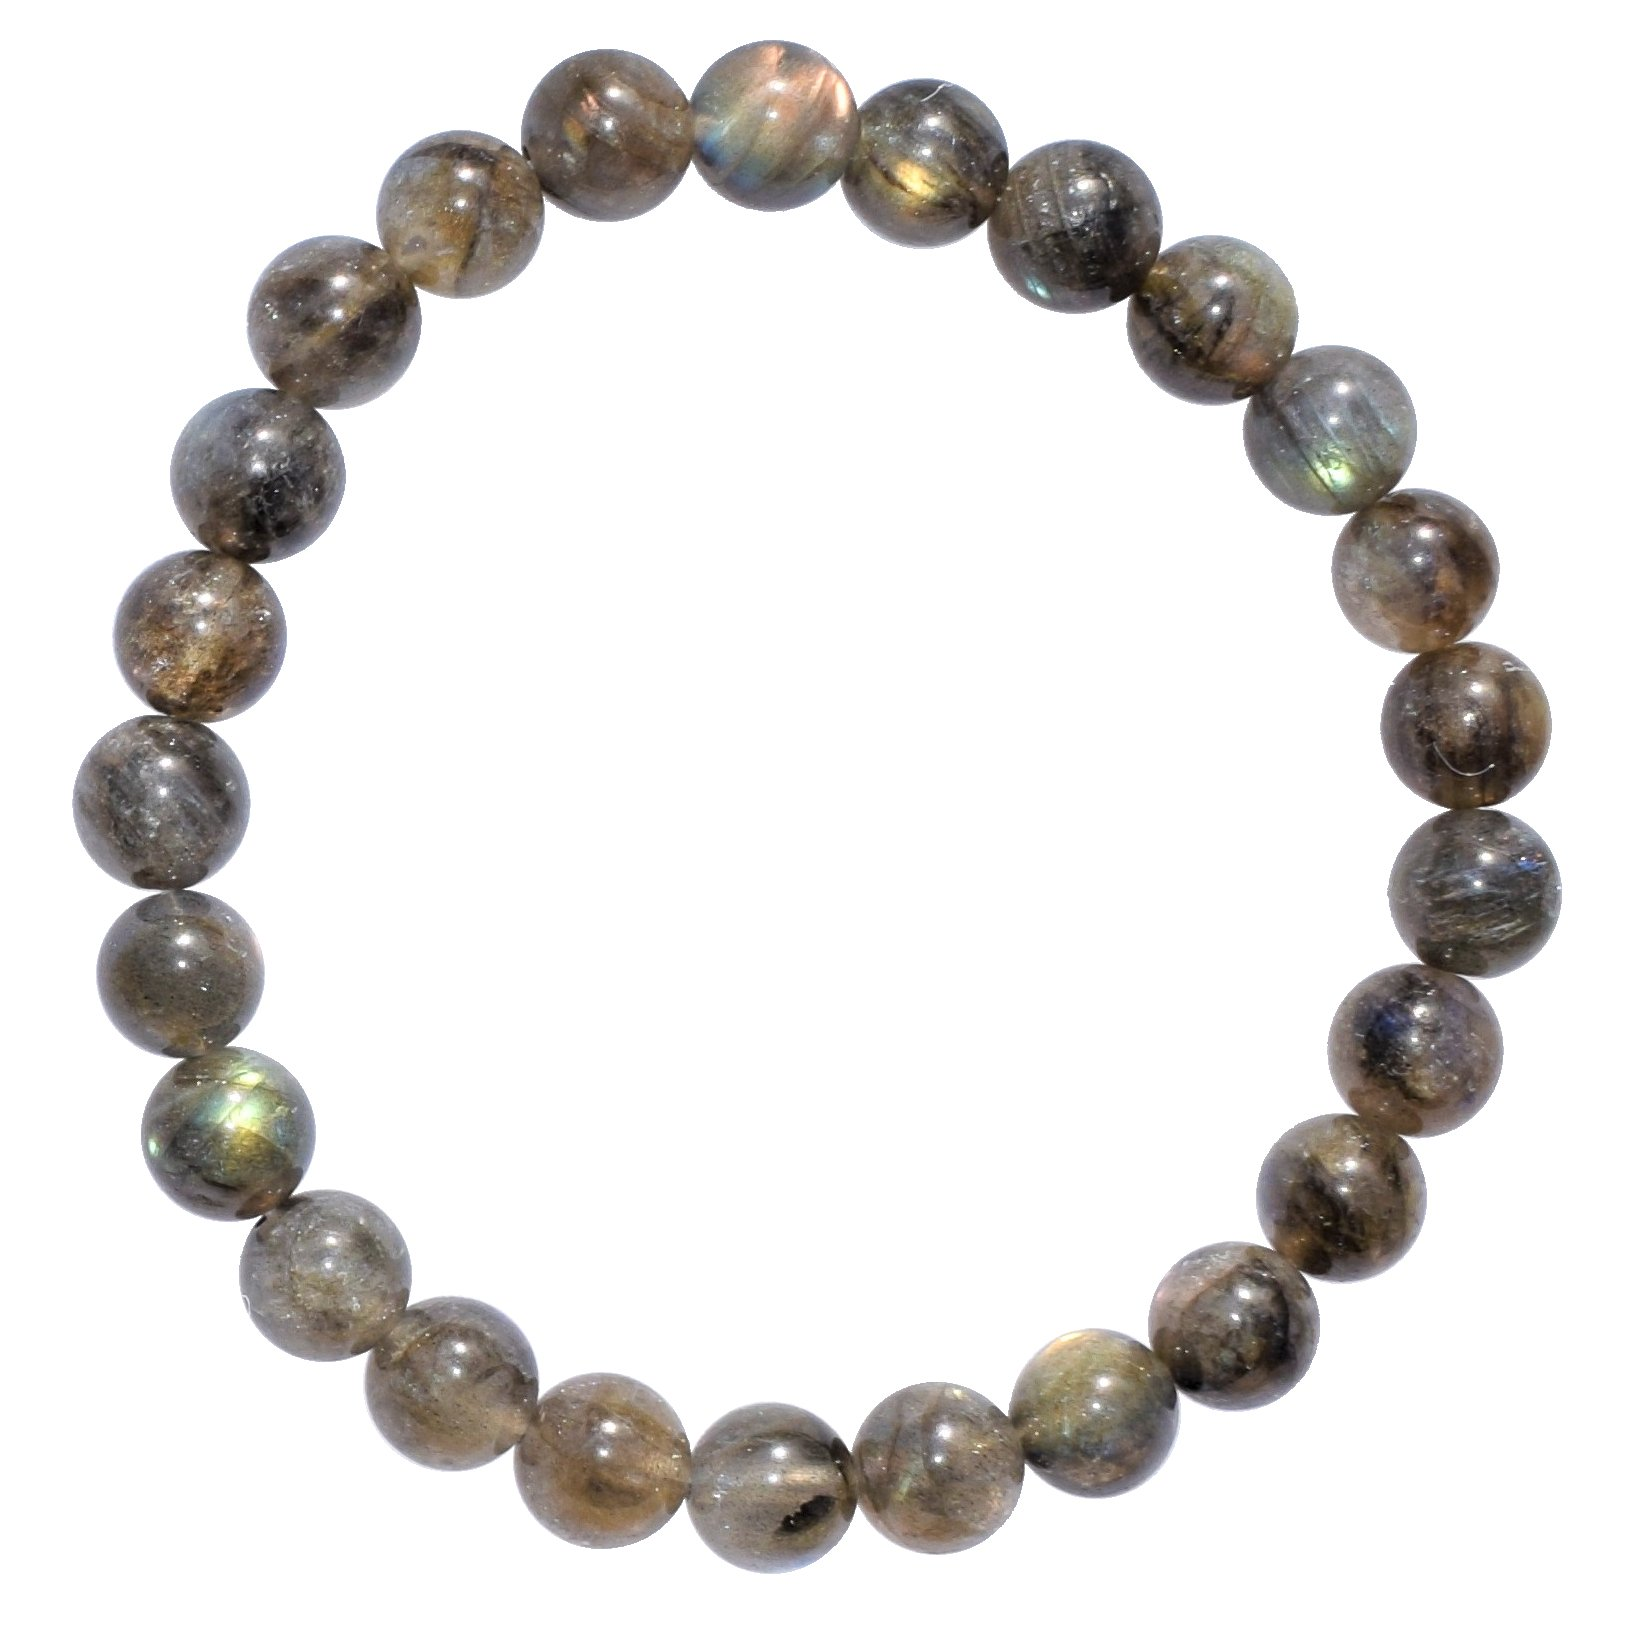 Zenergy Gems Selenite Charged Natural Labradorite Crystal Bracelets (Healing Energy/Transformation/Clarity) (8mm Round) by Zenergy Gems